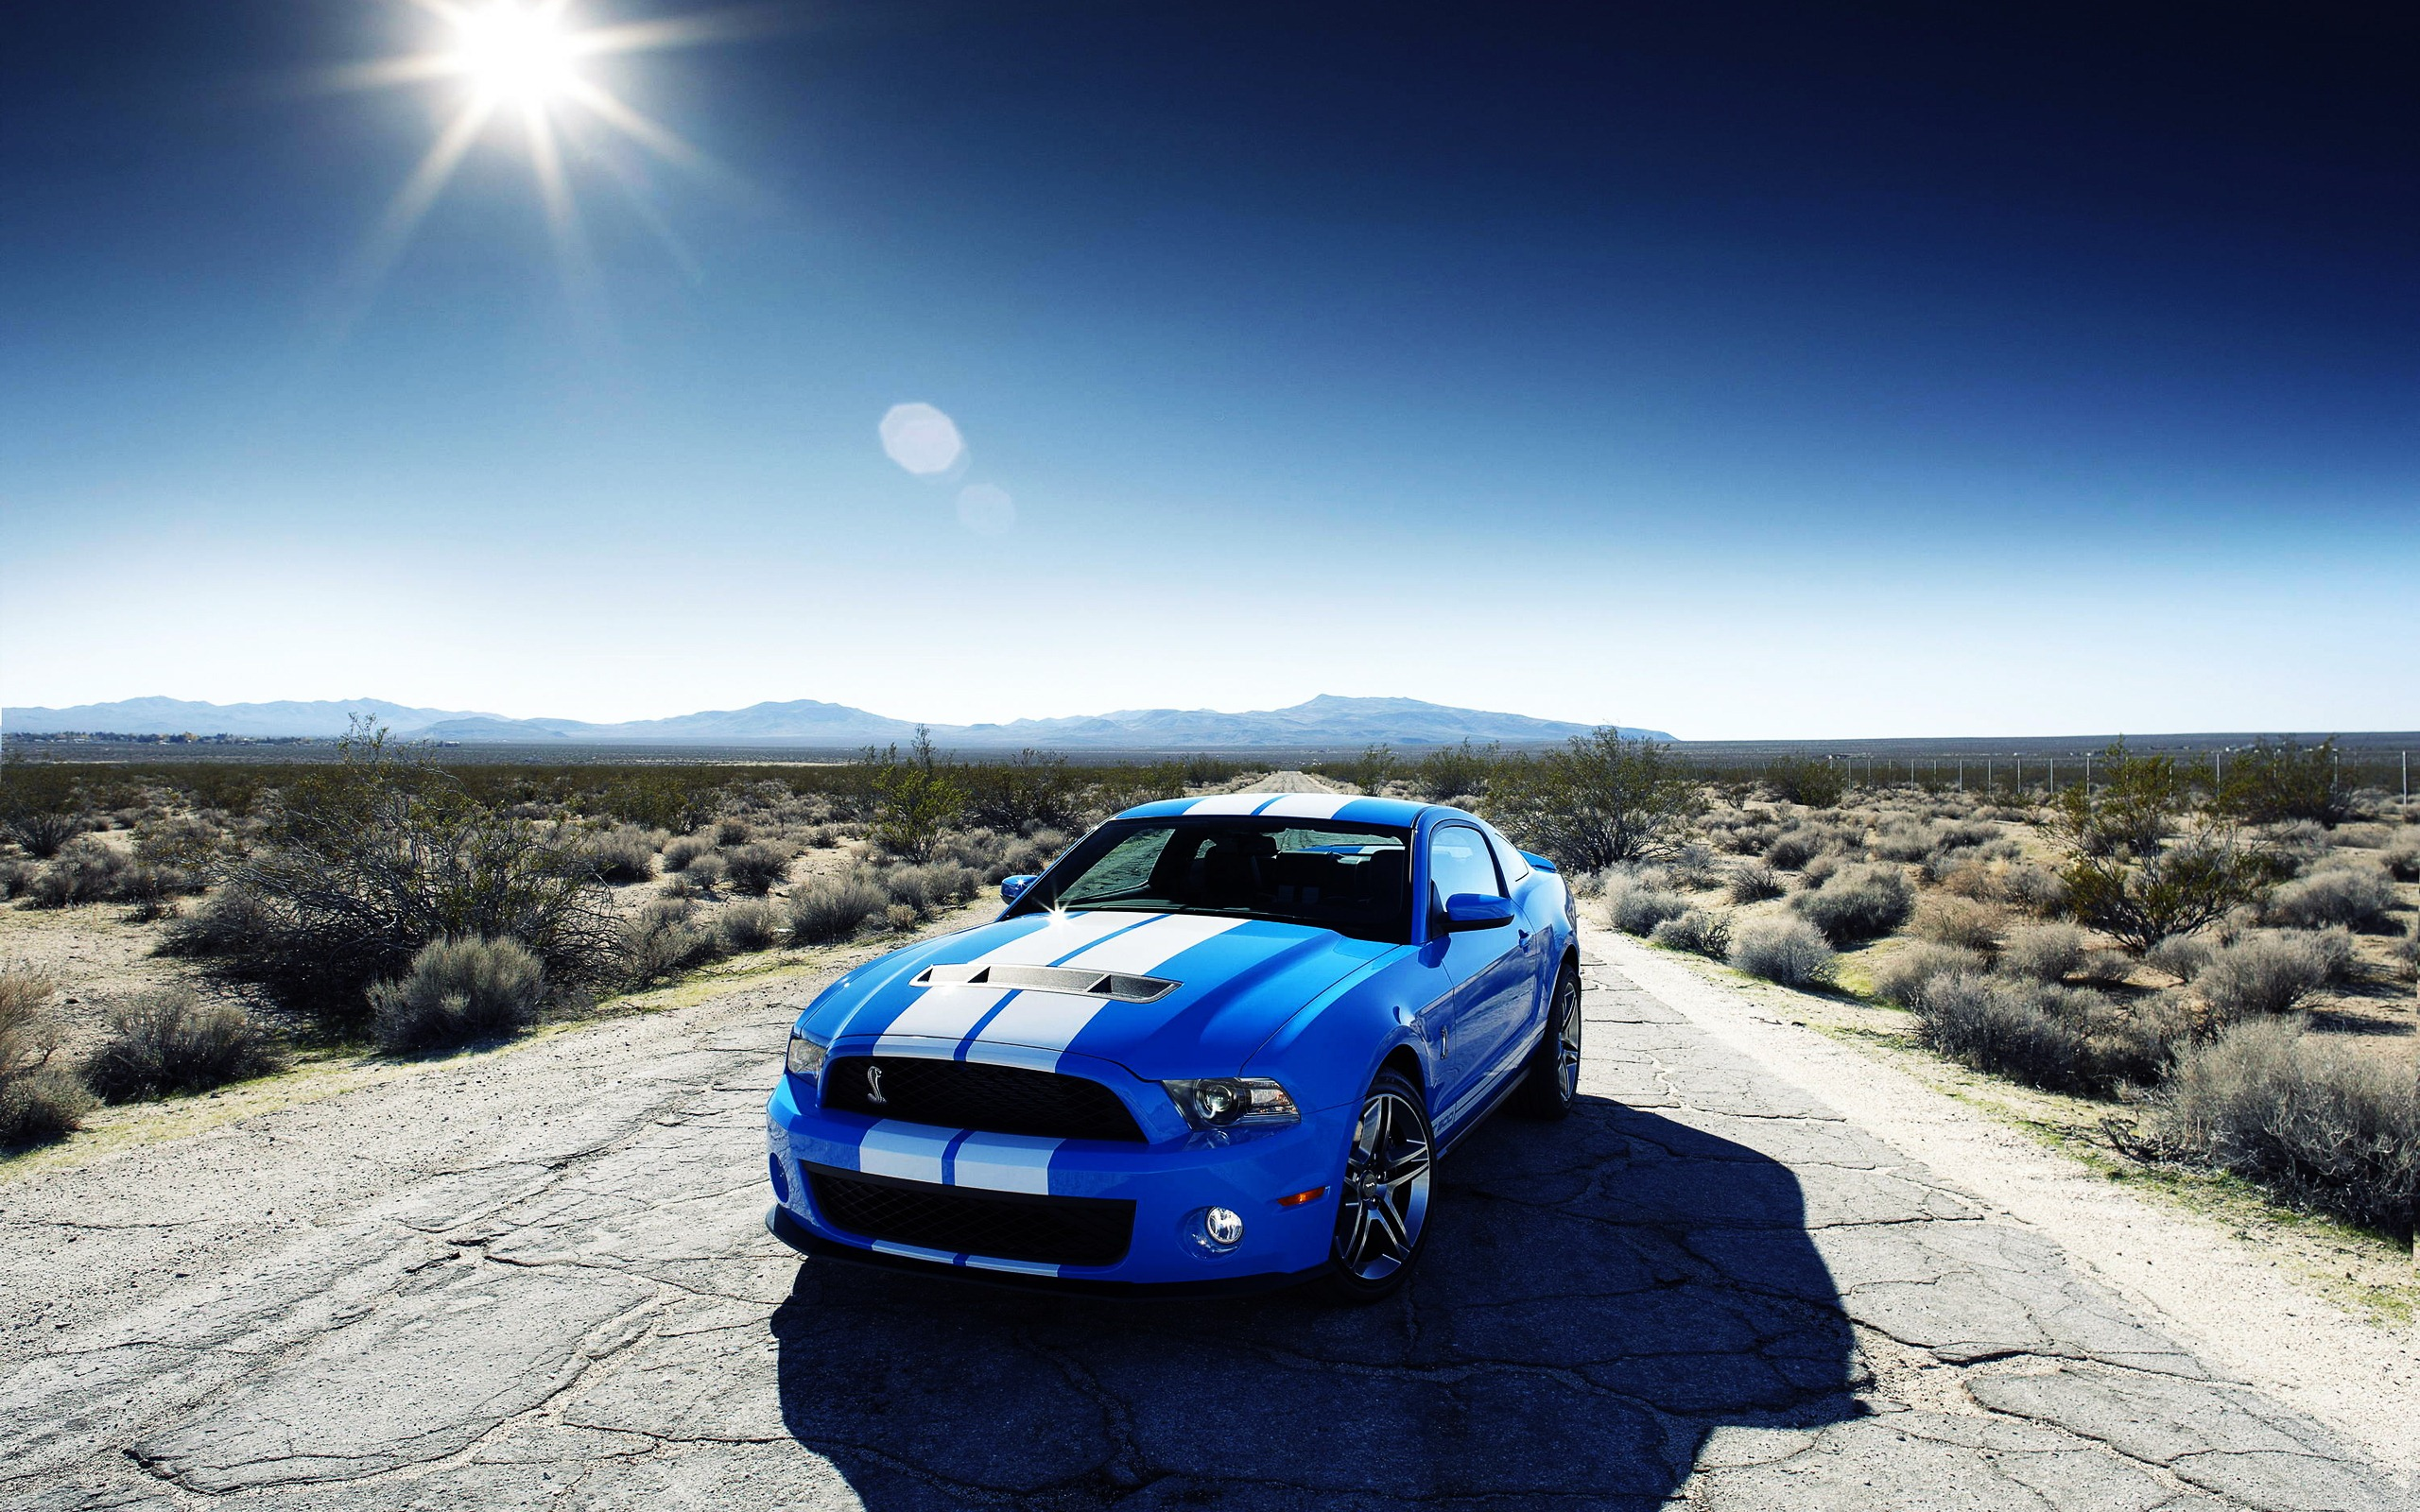 Mustang Wallpapers 1 Mustang Wallpapers 1 2010 Ford 285668